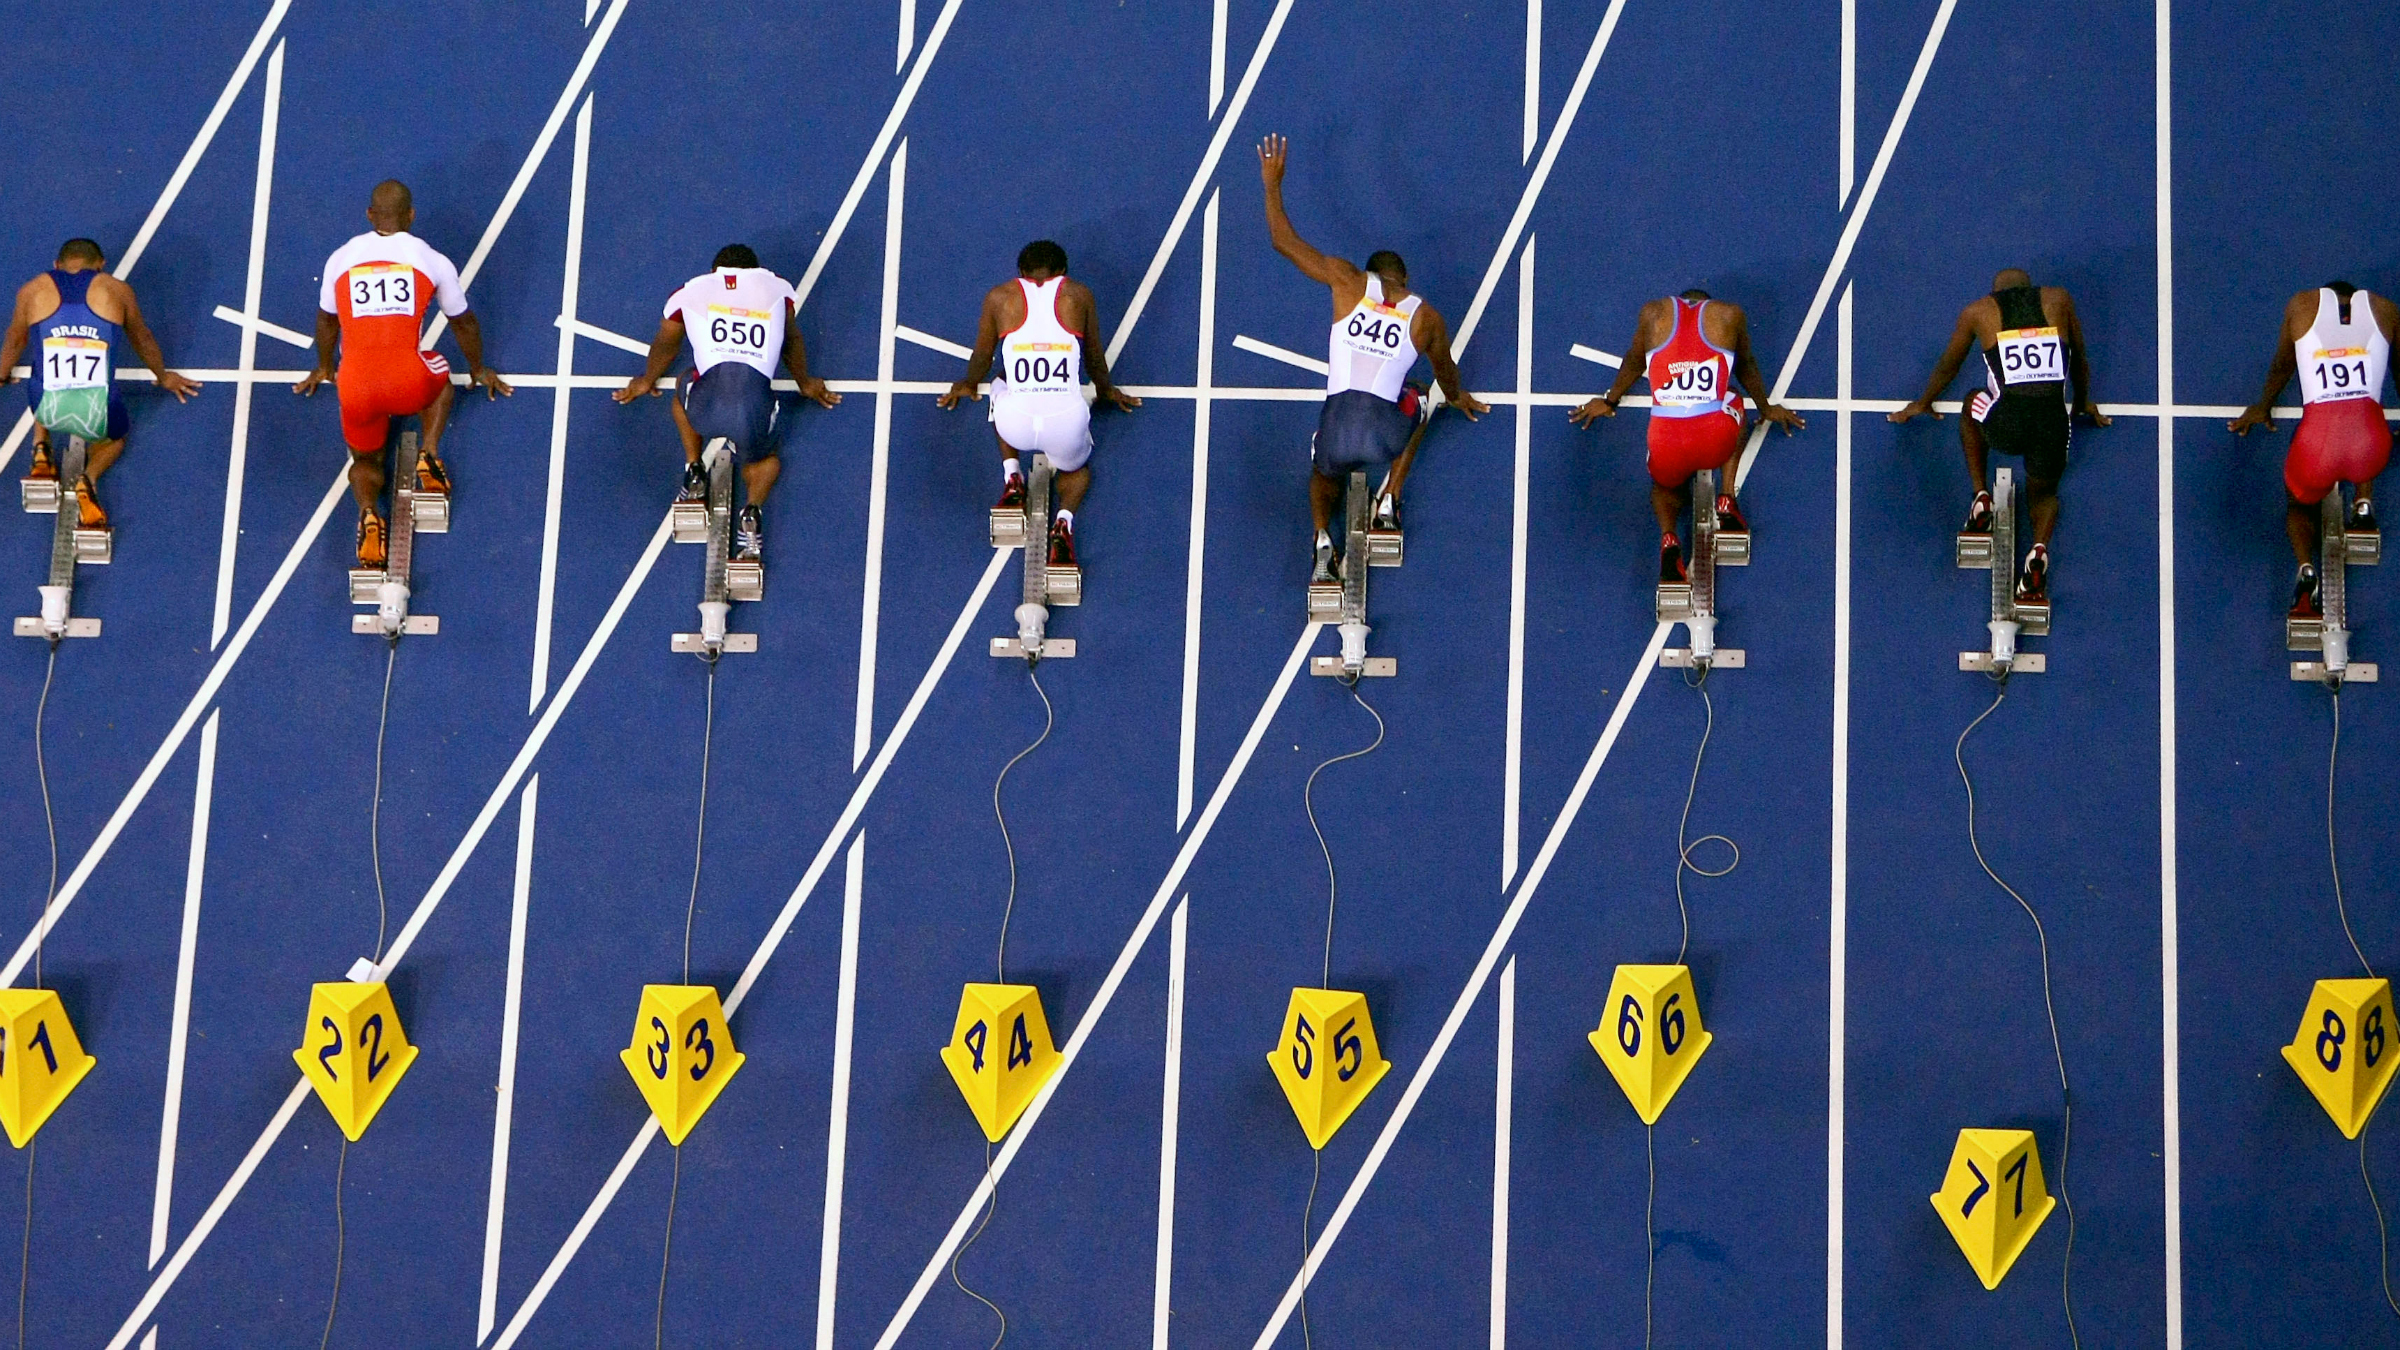 Competitors line before the start of the men's 100 metre race at the Pan American Games in Rio de Janeiro.